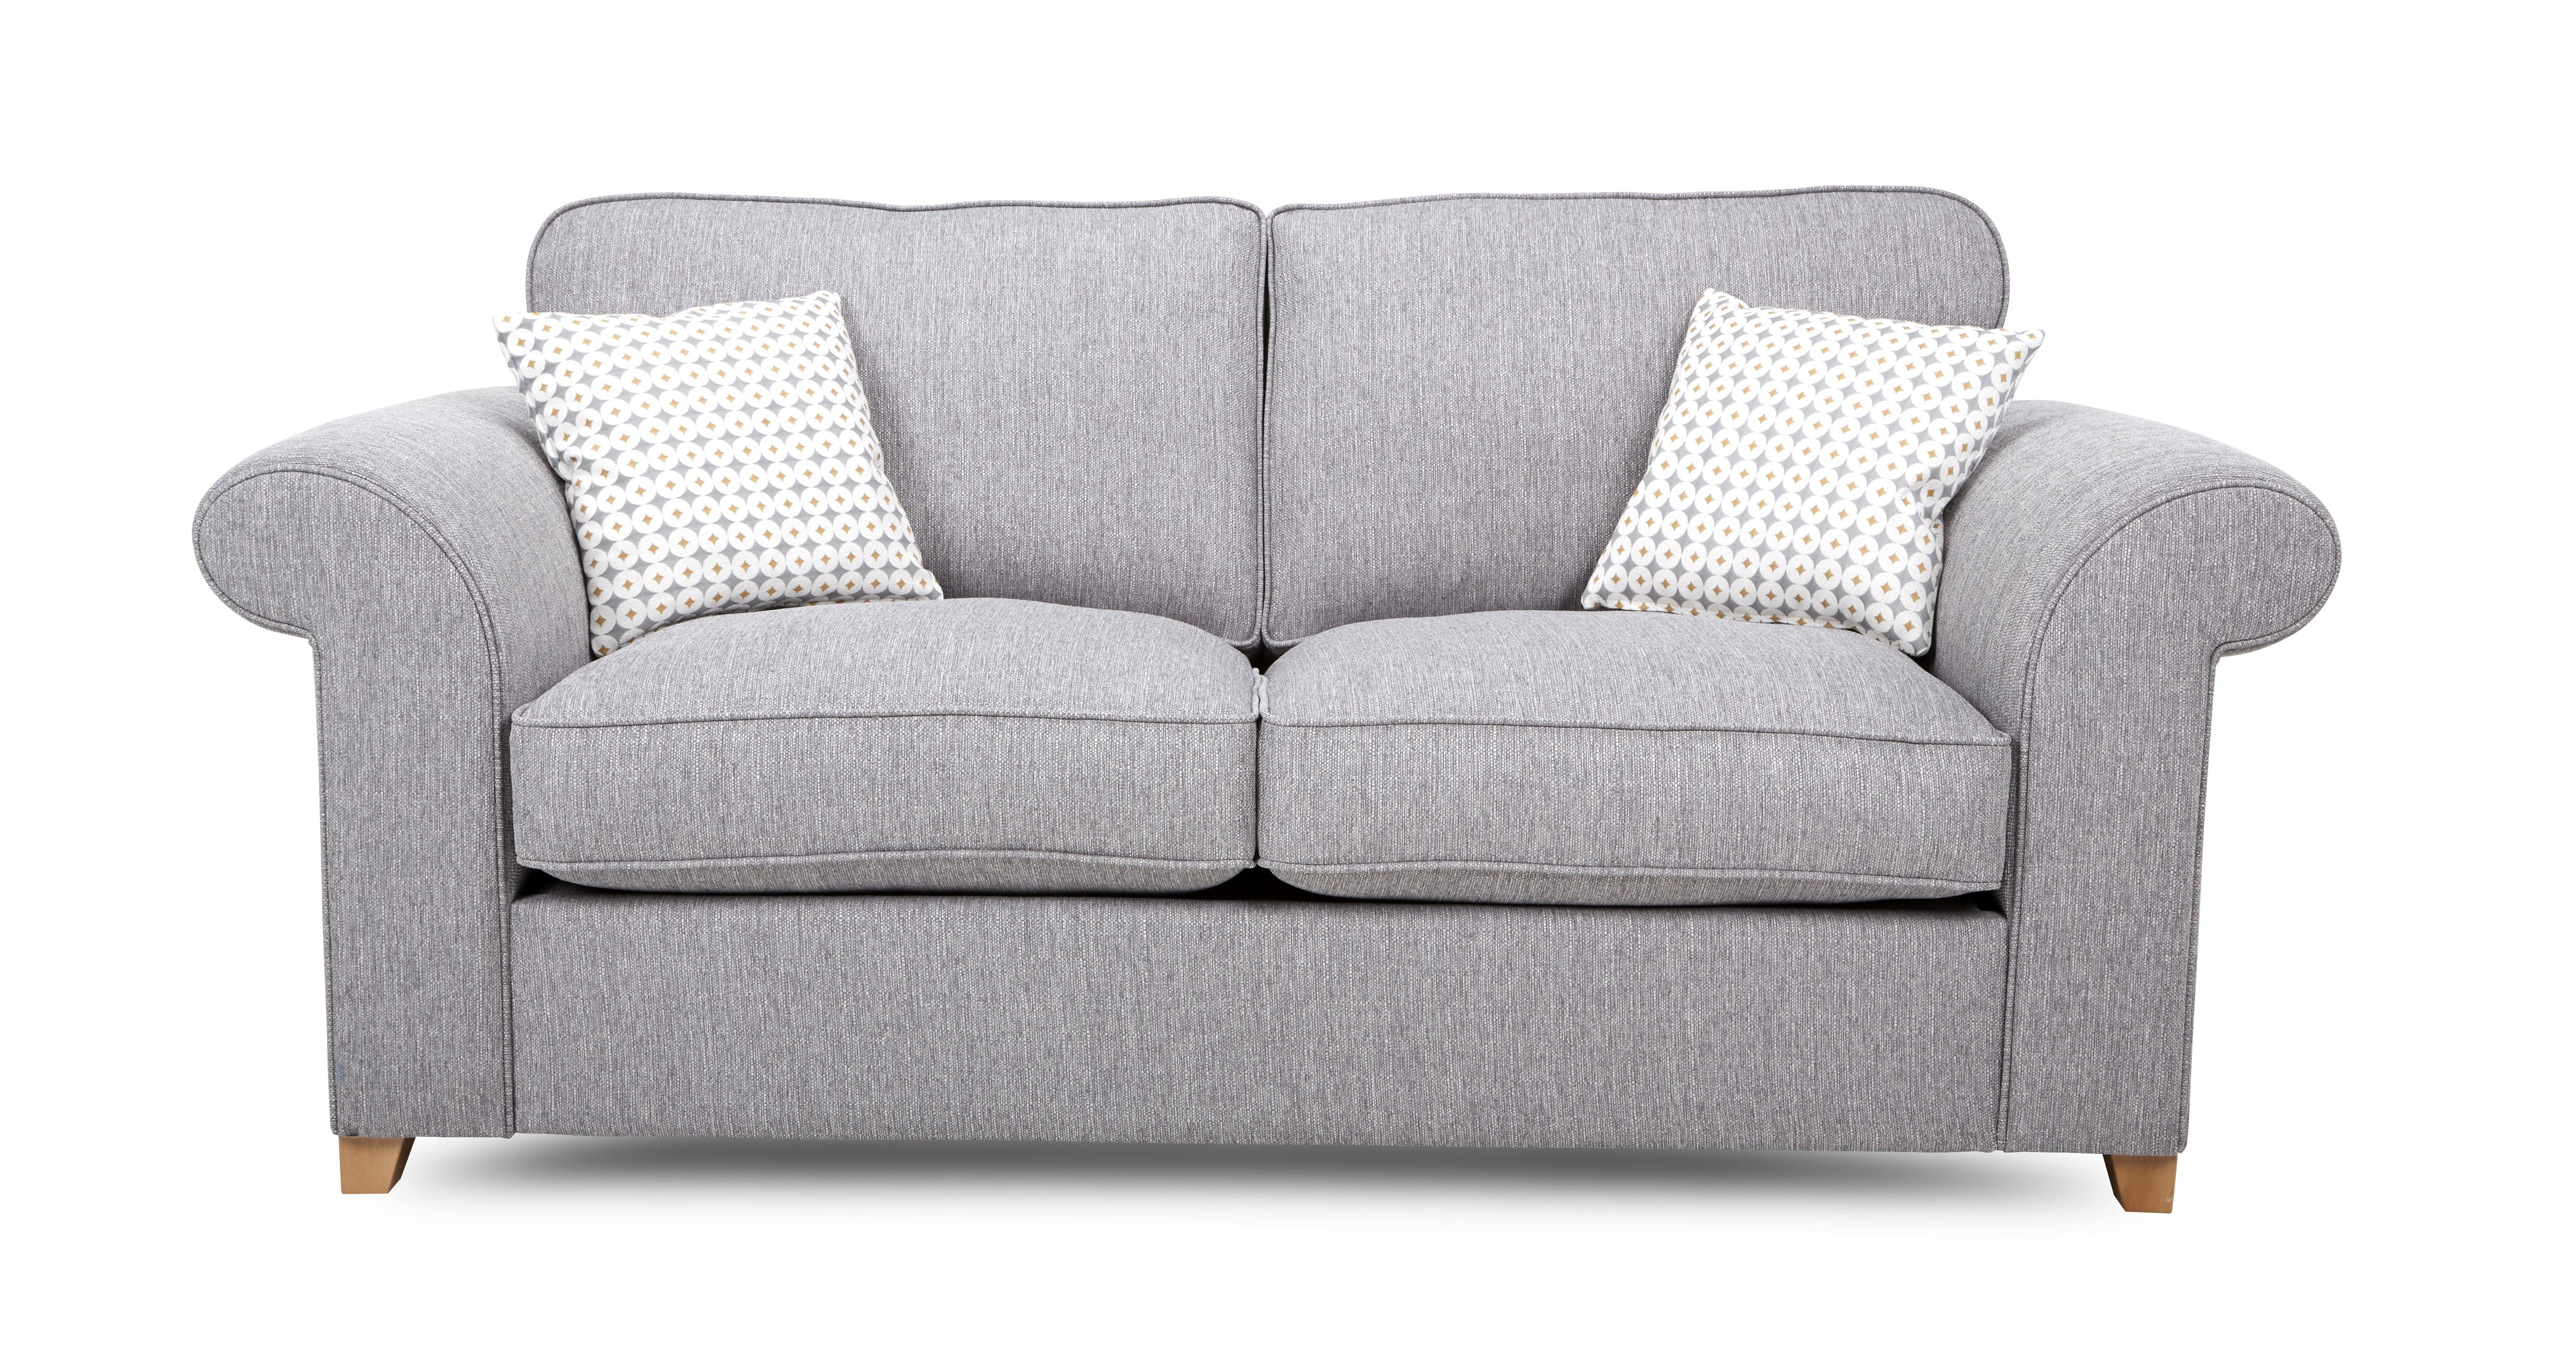 Angelic 2 Seater Sofa Bed Dfs Ireland